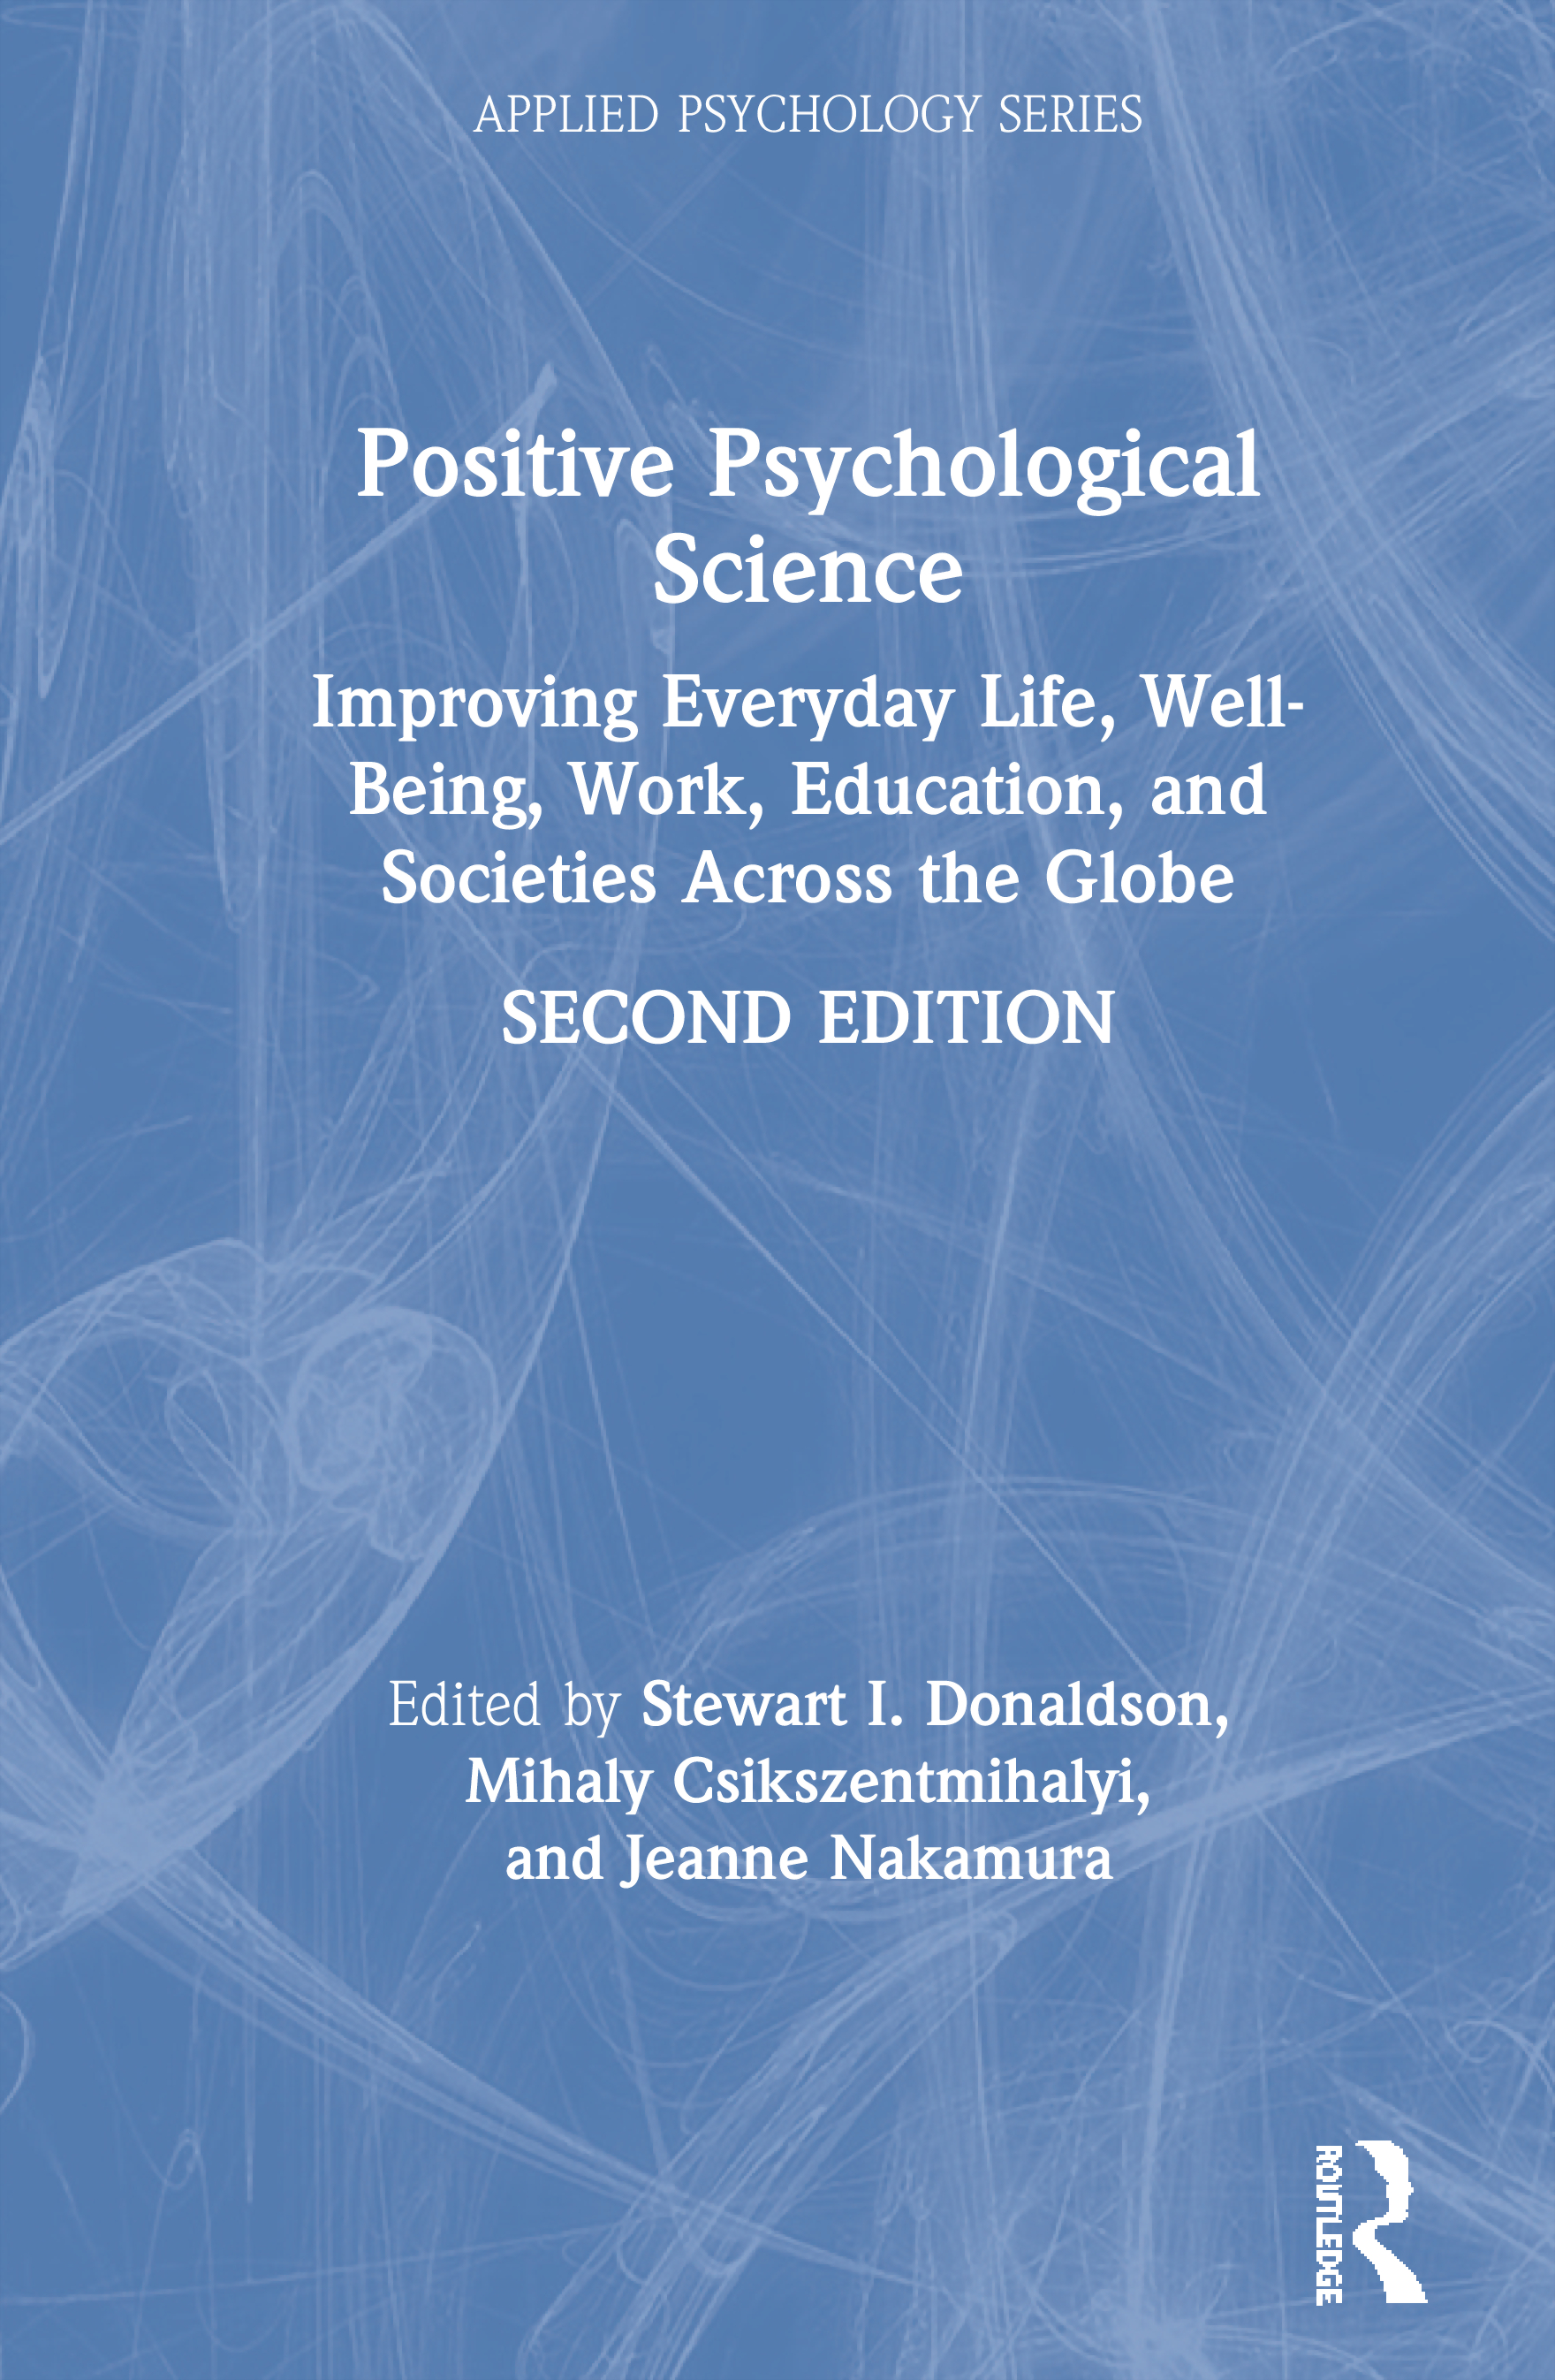 Positive Psychological Science: Improving Everyday Life, Well-Being, Work, Education, and Societies Across the Globe book cover